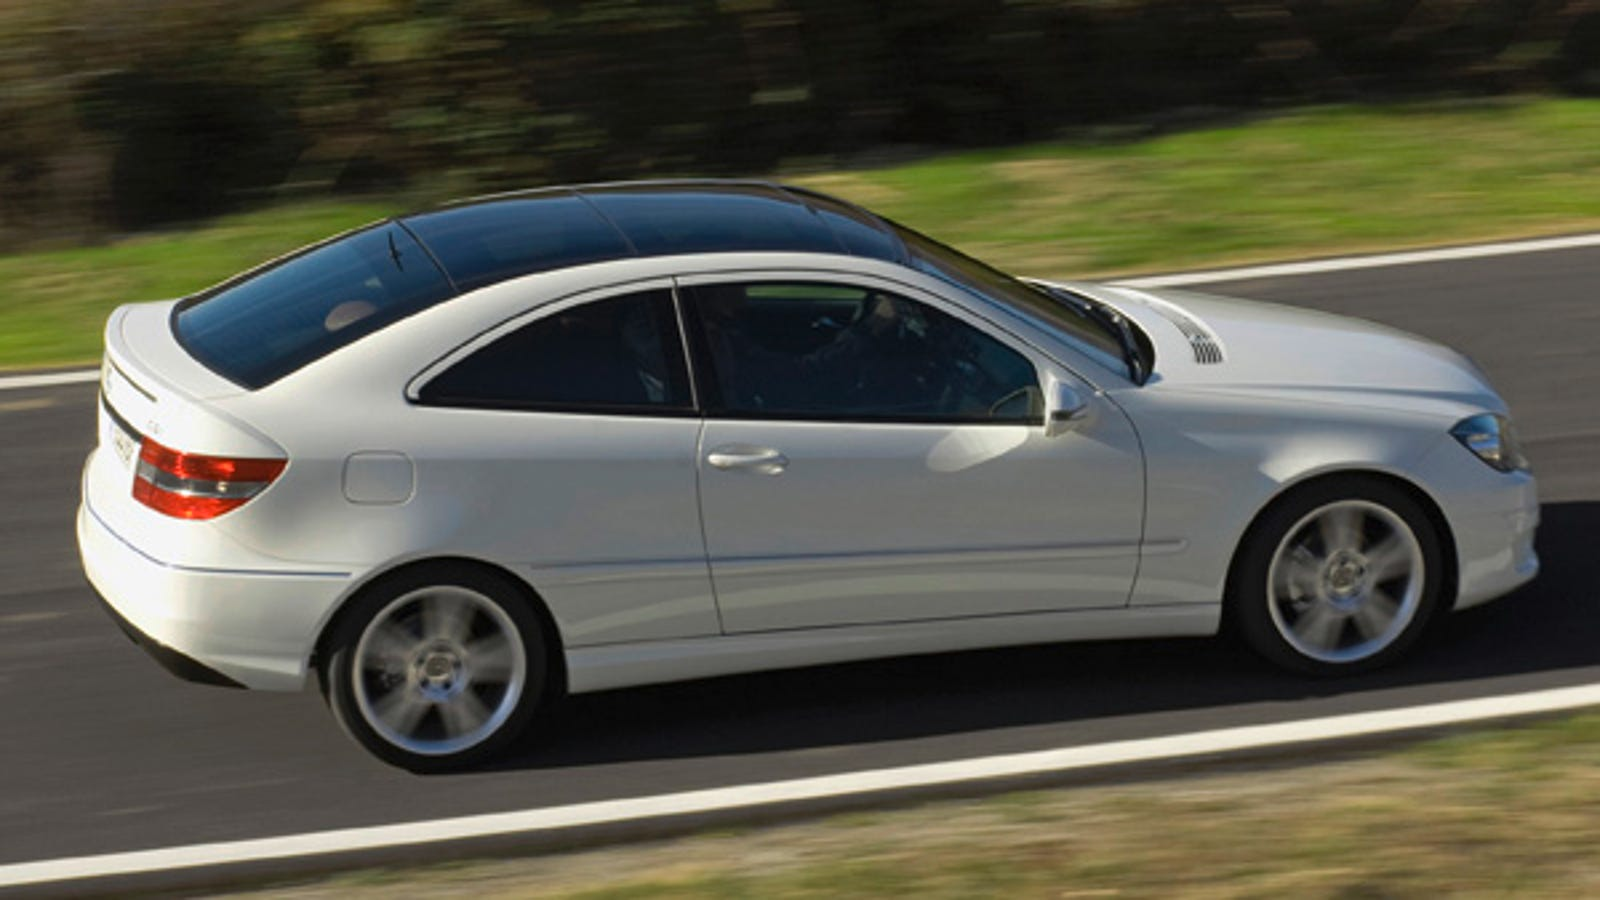 2009 Mercedes Benz Clc 220 Cdi Revealed We Applaud Diesel Goodness